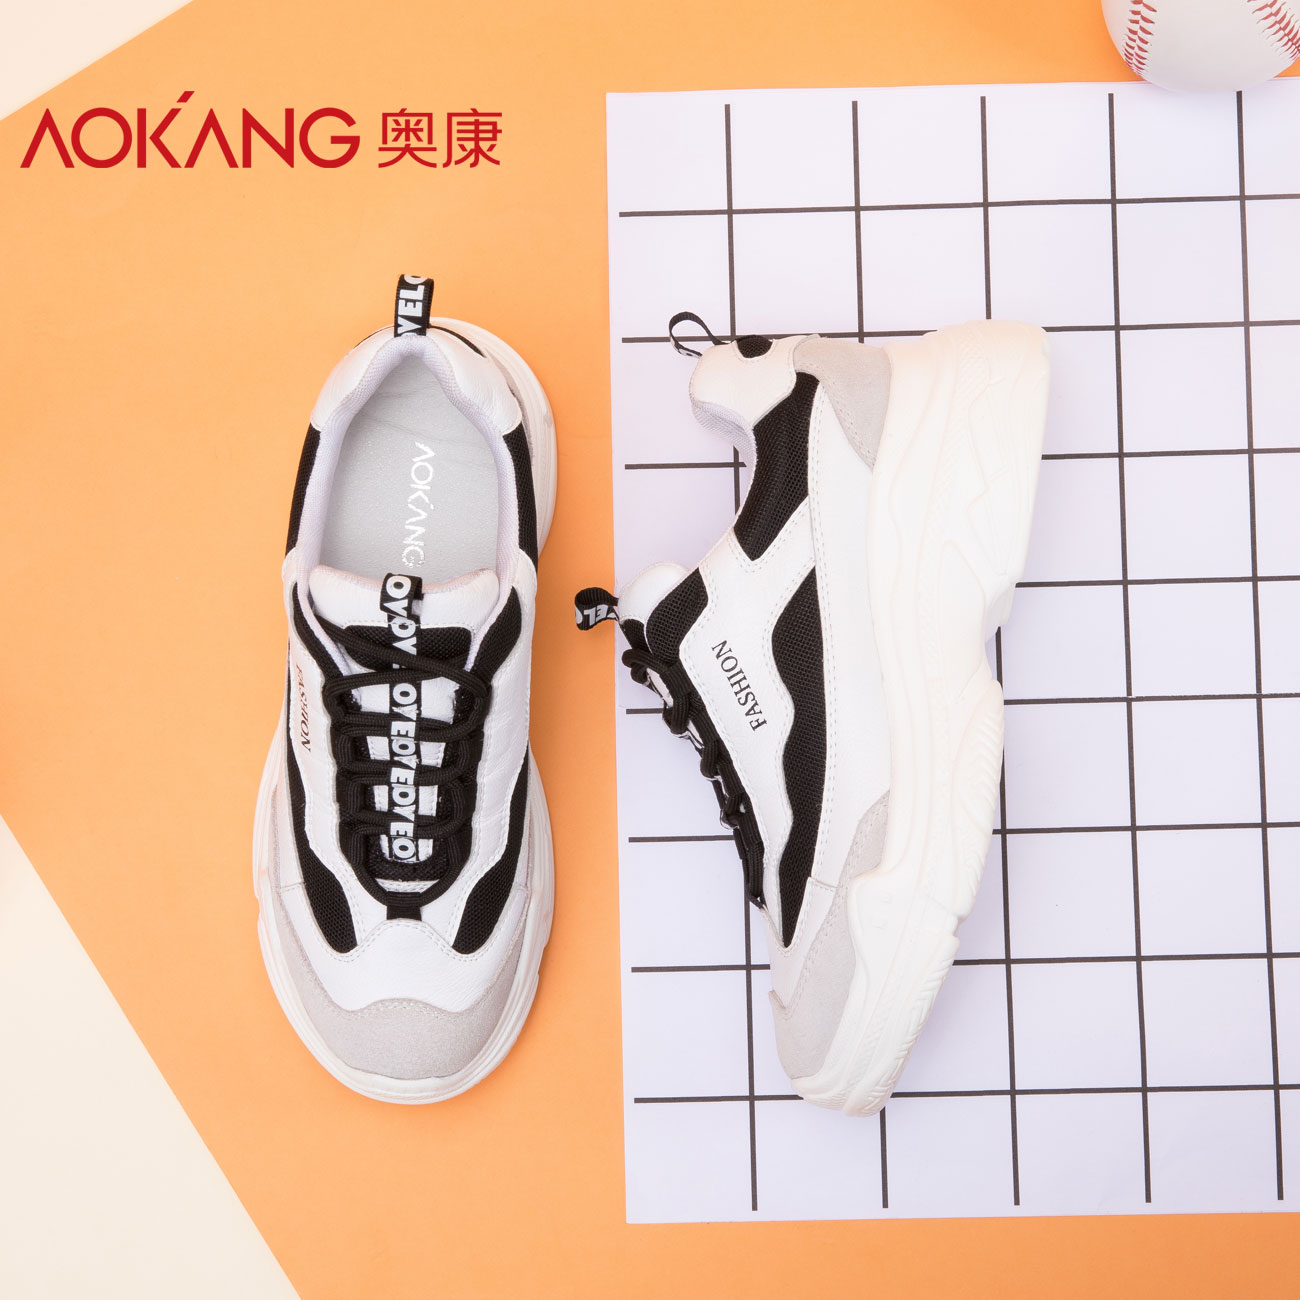 Aokang women's shoes spring and autumn thick sole comfortable fashion leisure sports shoes Korean version of fashion students comfortable daddy shoes